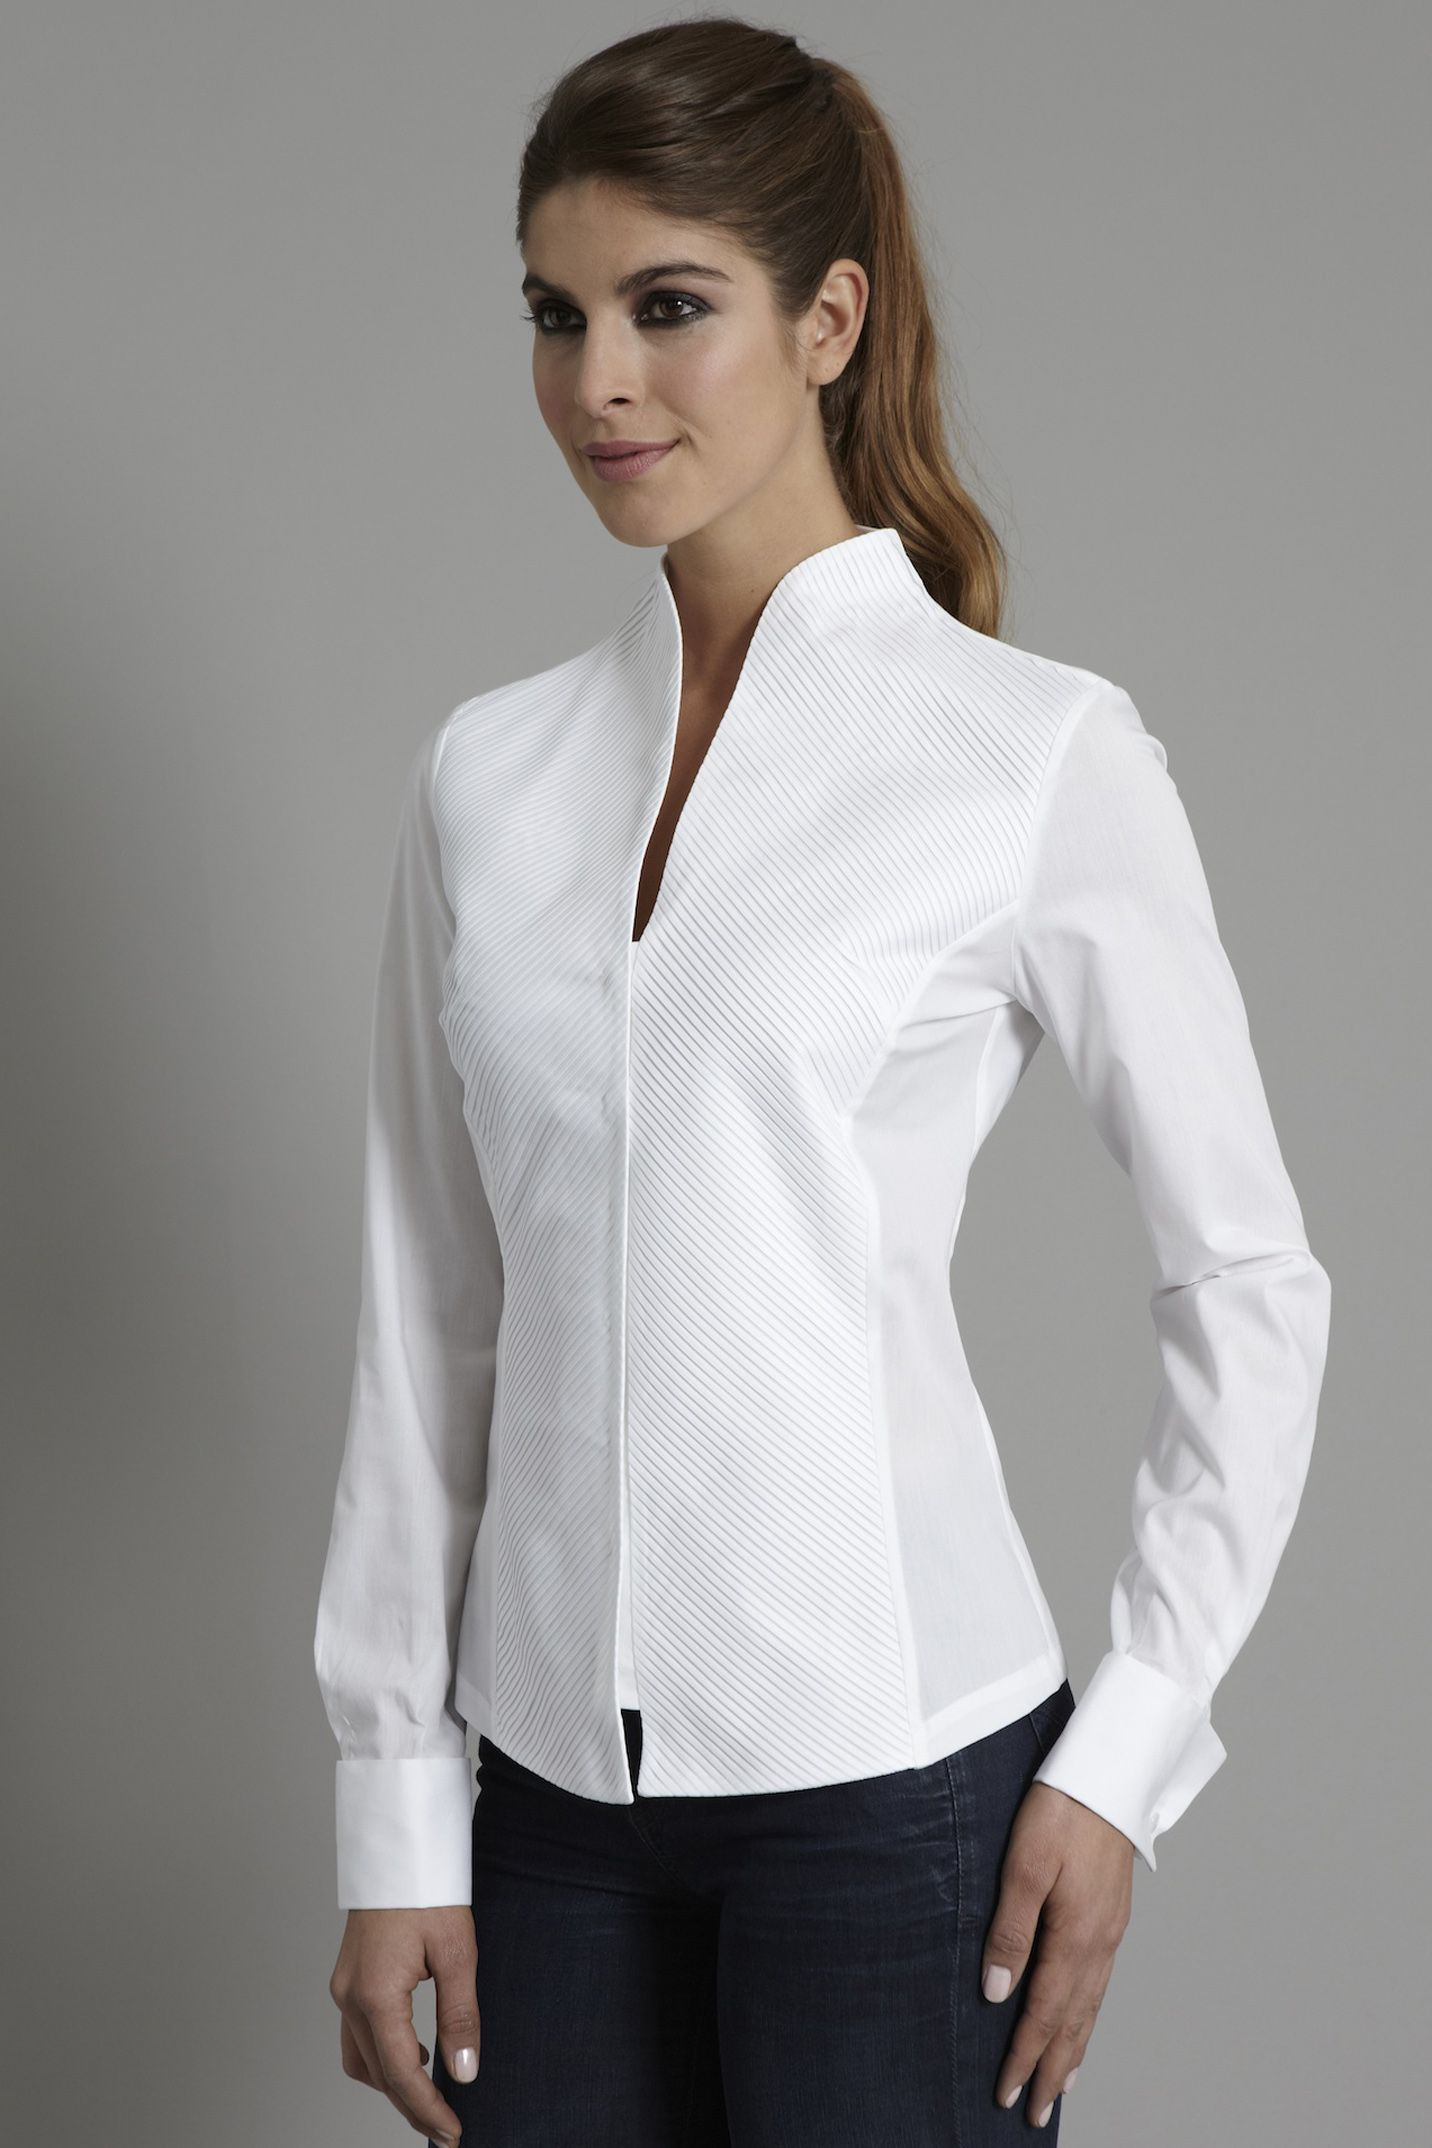 Discover thousands of images about Shirts for sewing class - Womens shirts  with collars eec129ca5